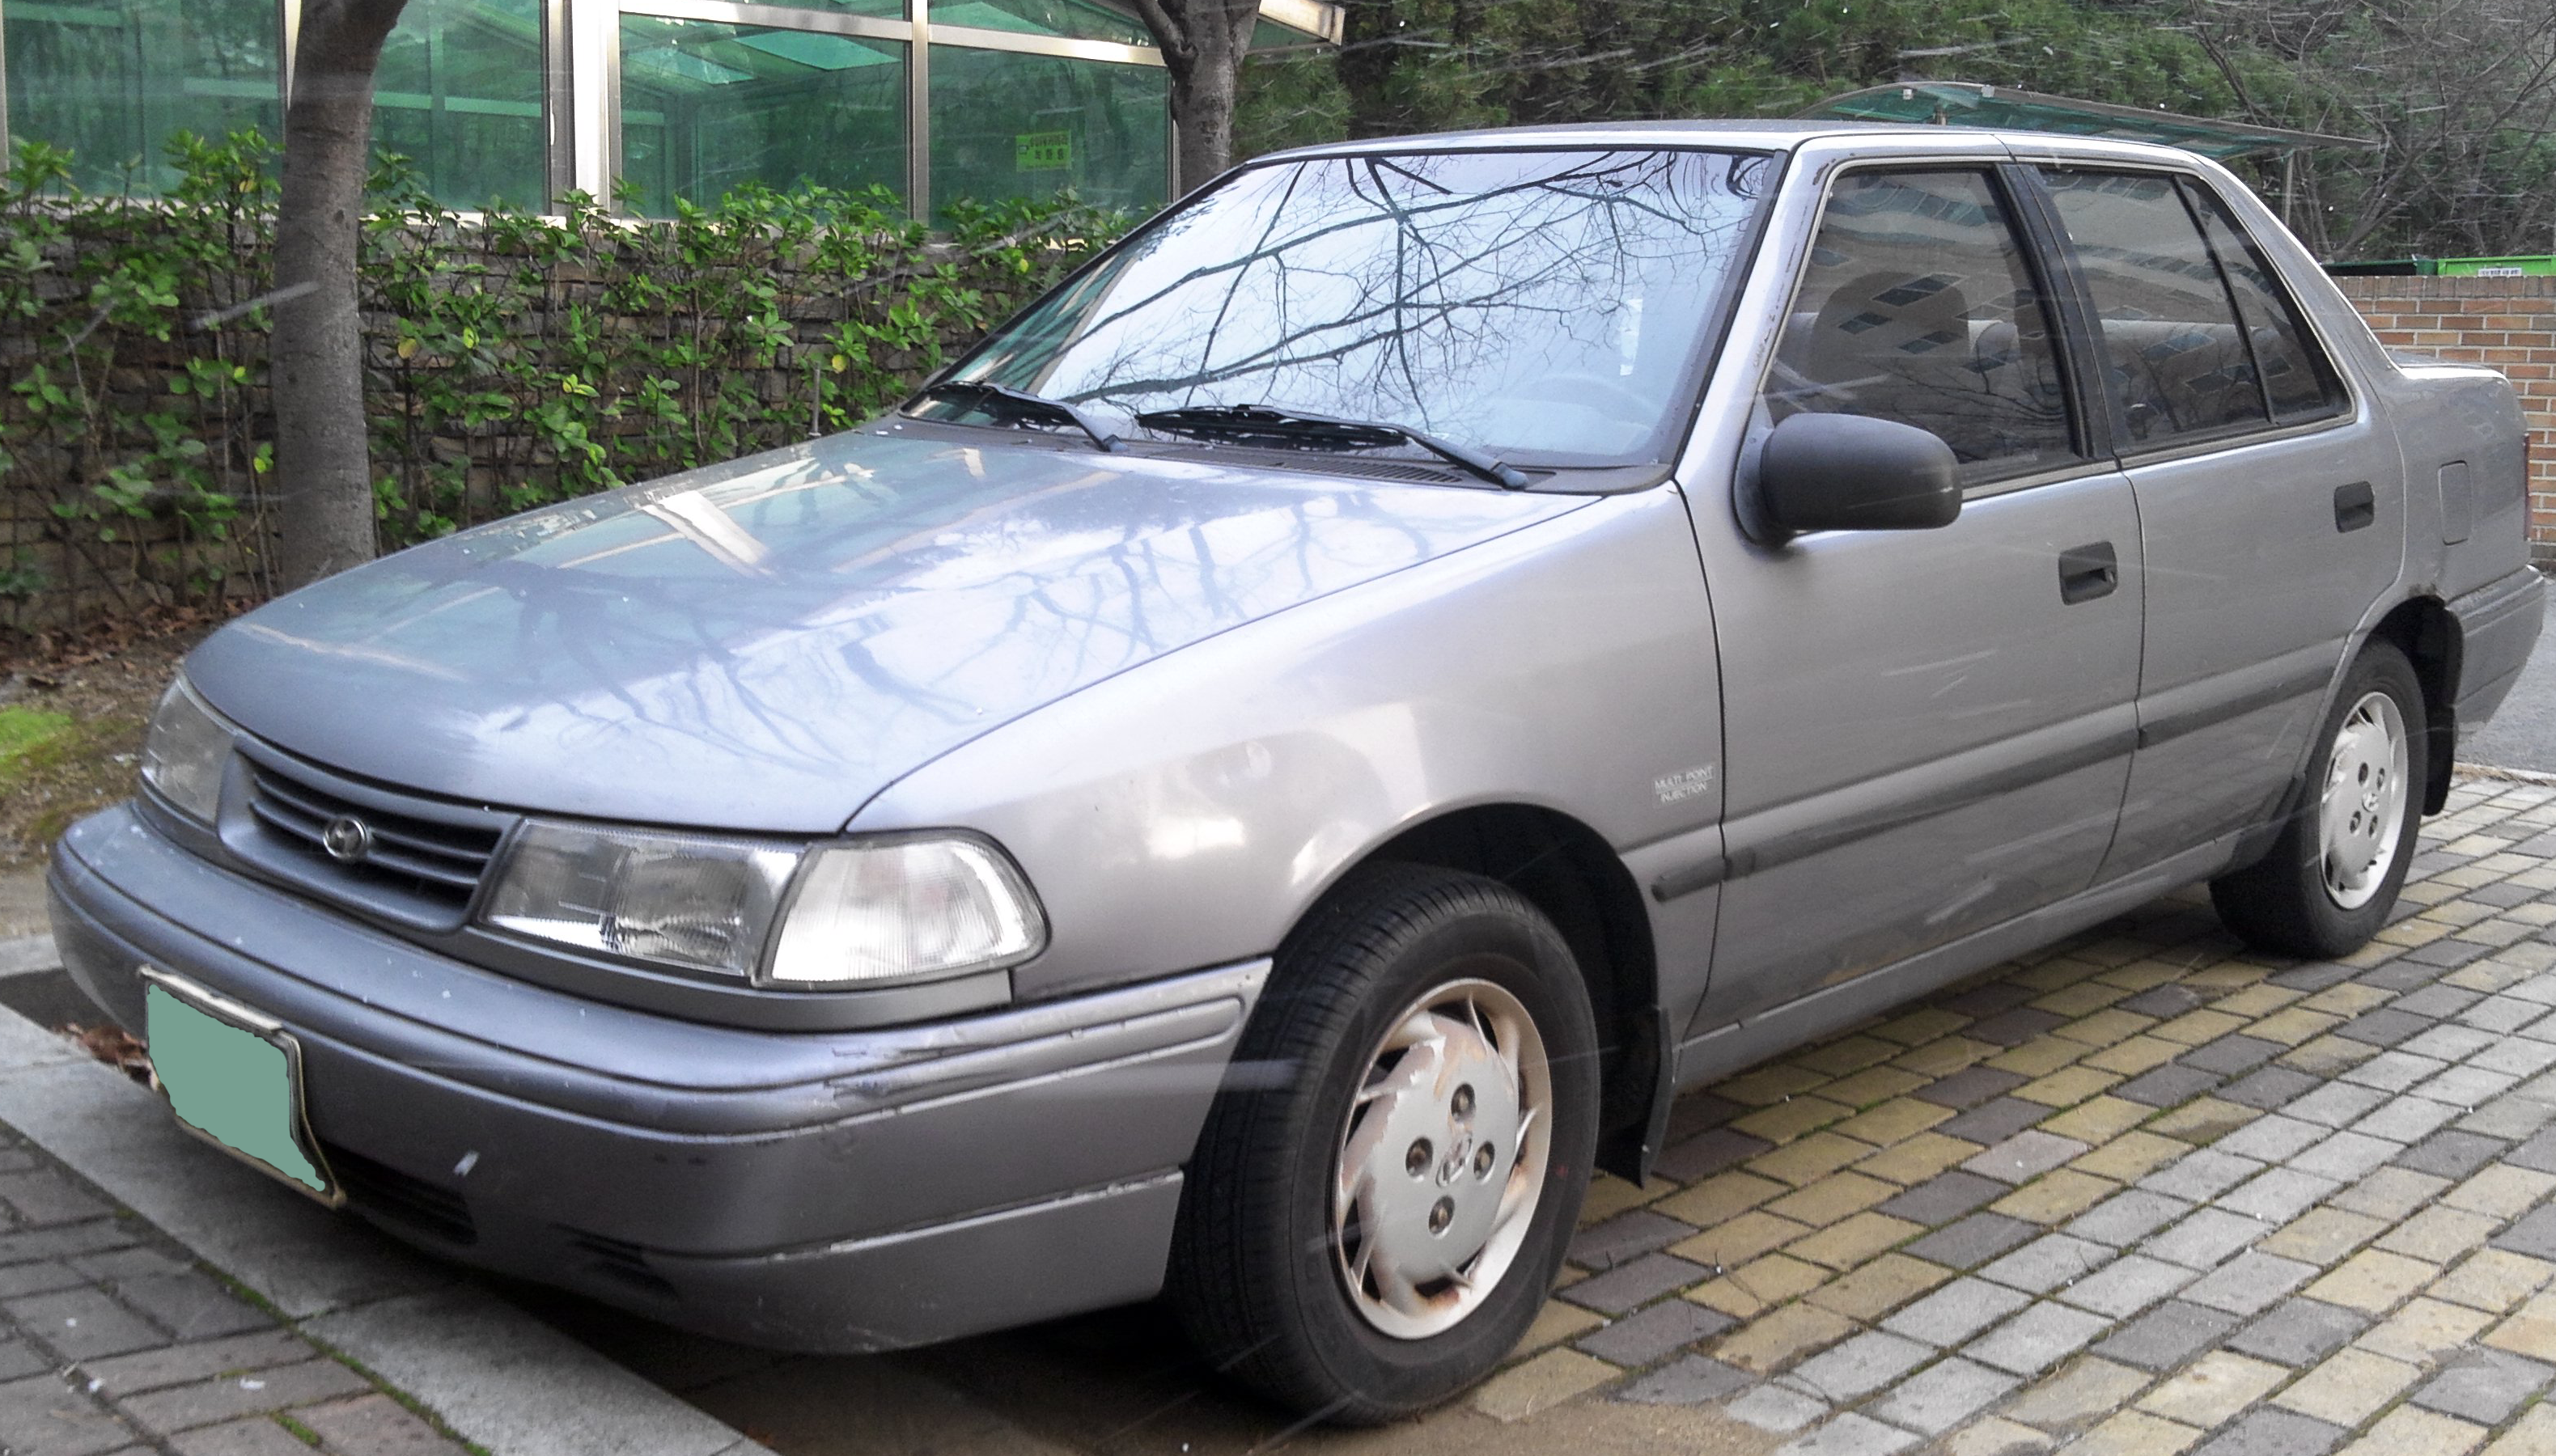 hyundai pony/excel sedan (x-2) 1990 wallpaper